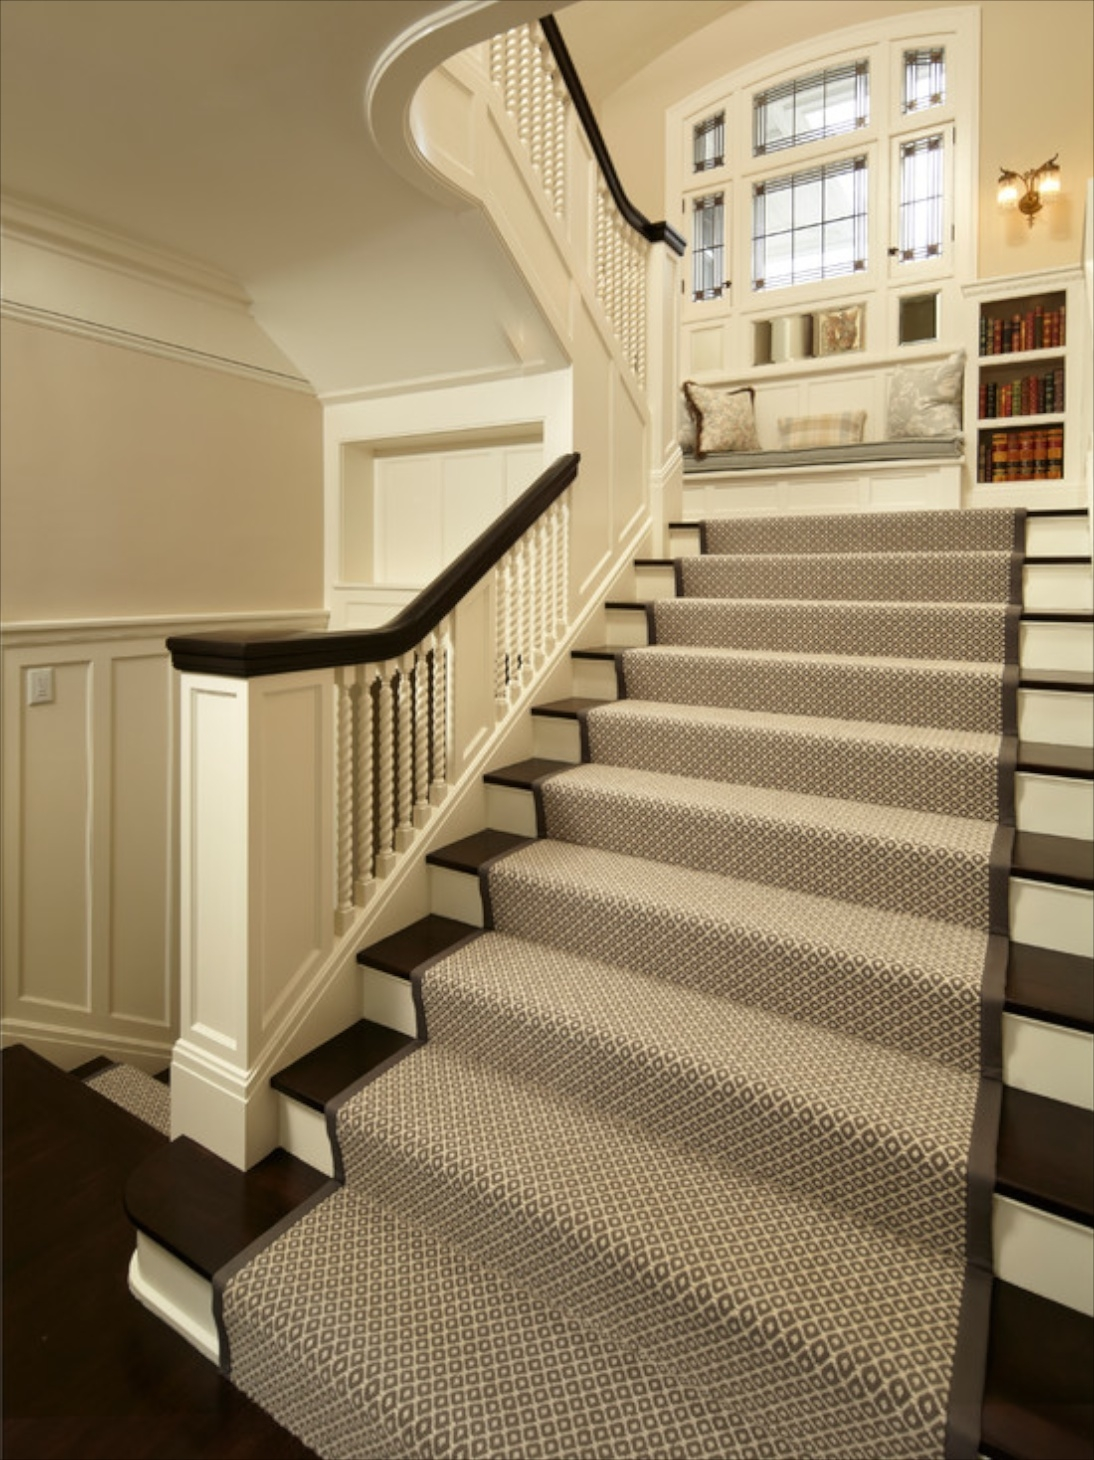 Making Stairs Safe In Stair Tread Carpet Bars (#17 of 20)